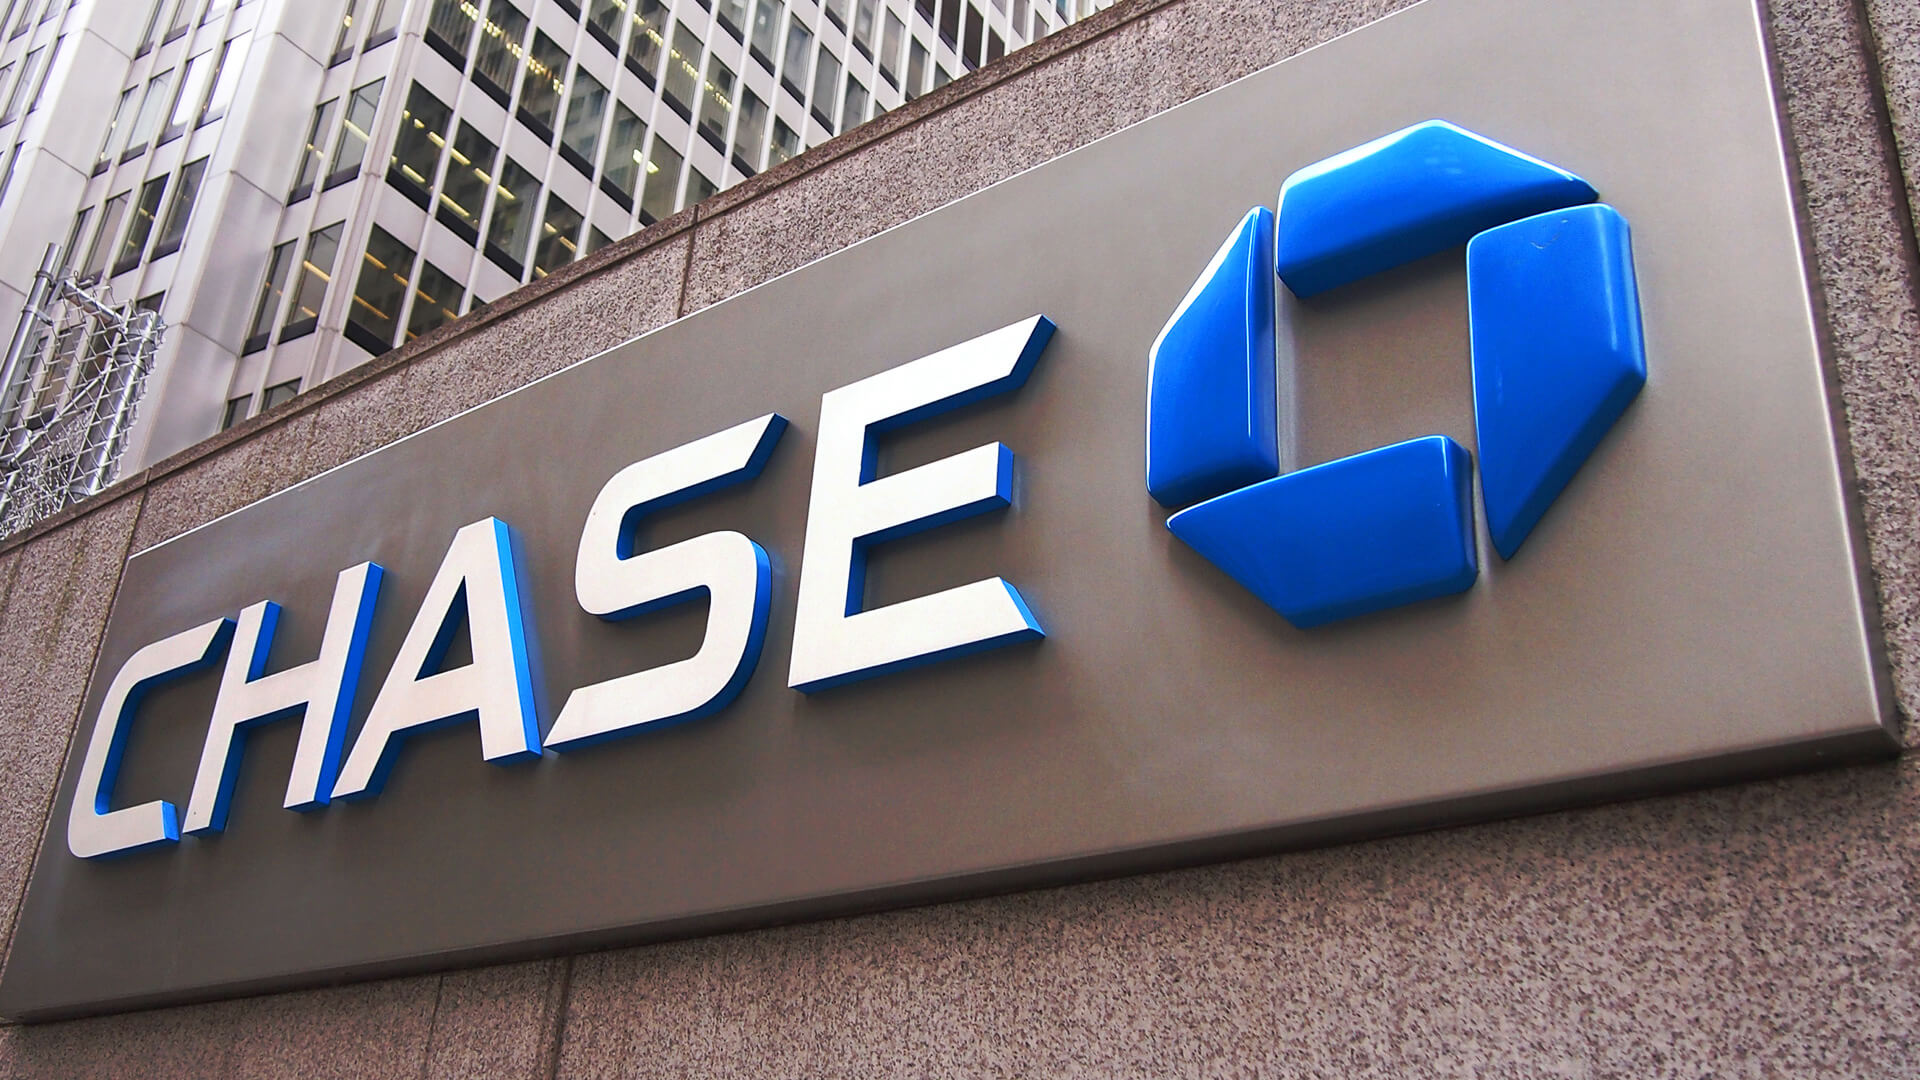 How Much Is Chase Worth? | GOBankingRates